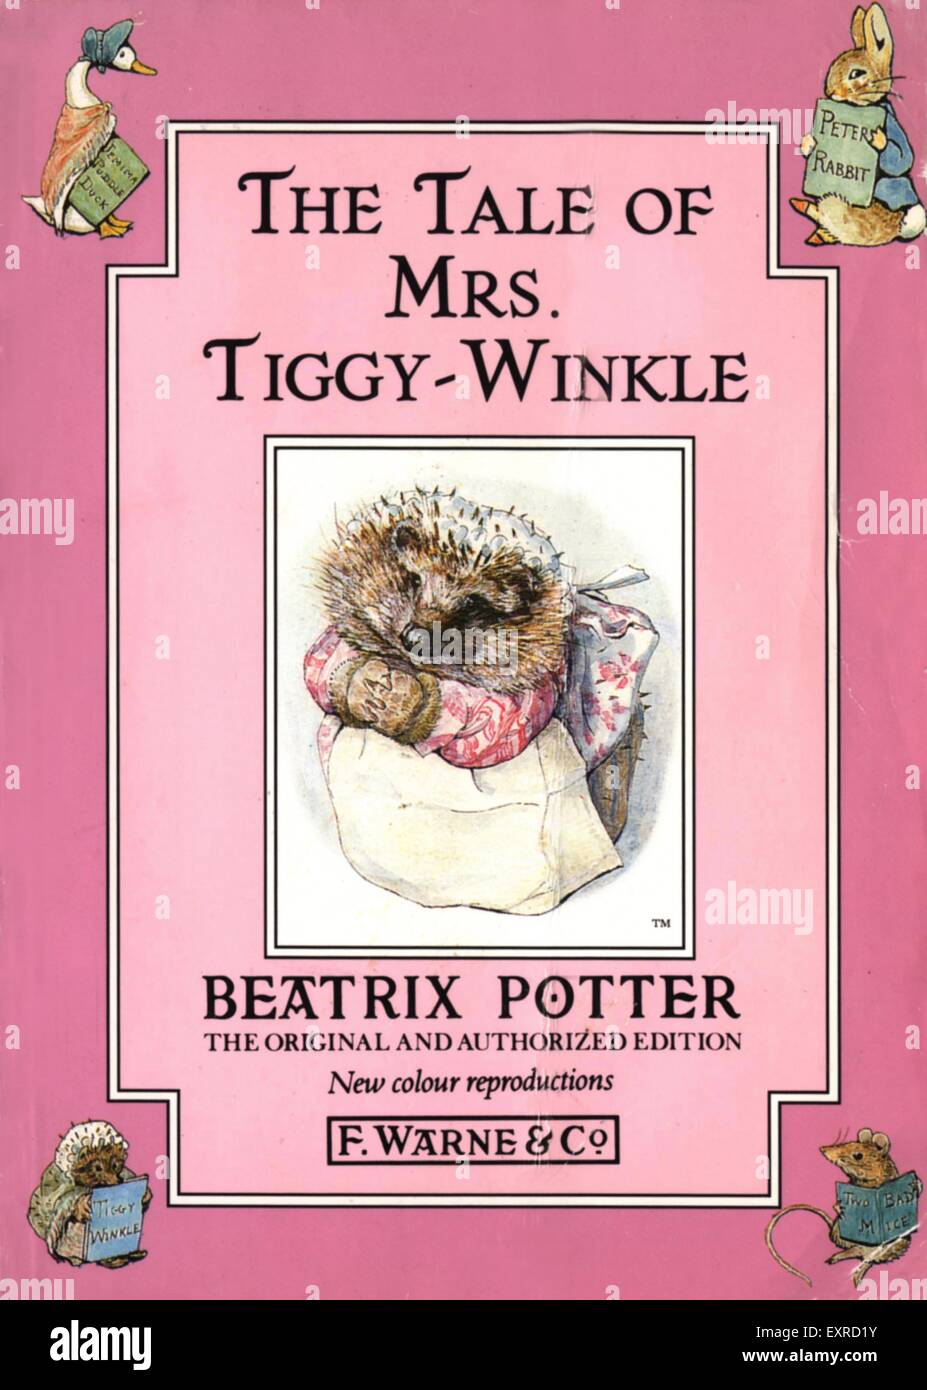 1990s UK The Tale Of Mrs Tiggy-Winkle by Beatrix Potter Book Cover - Stock Image